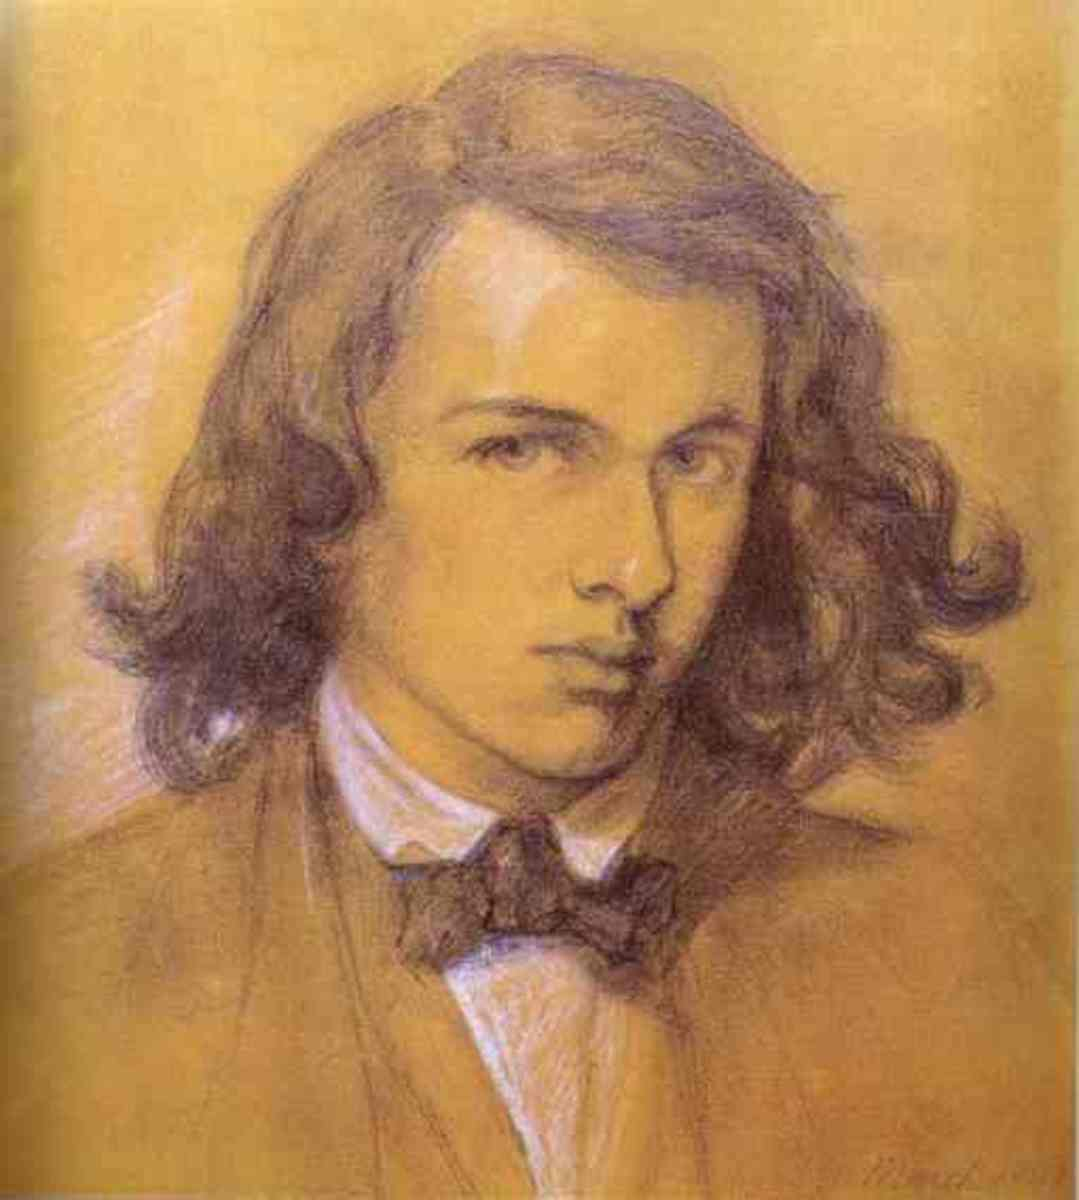 The Paintings of Pre-Raphaelite artist Dante Gabriel Rossetti, legends and stunners